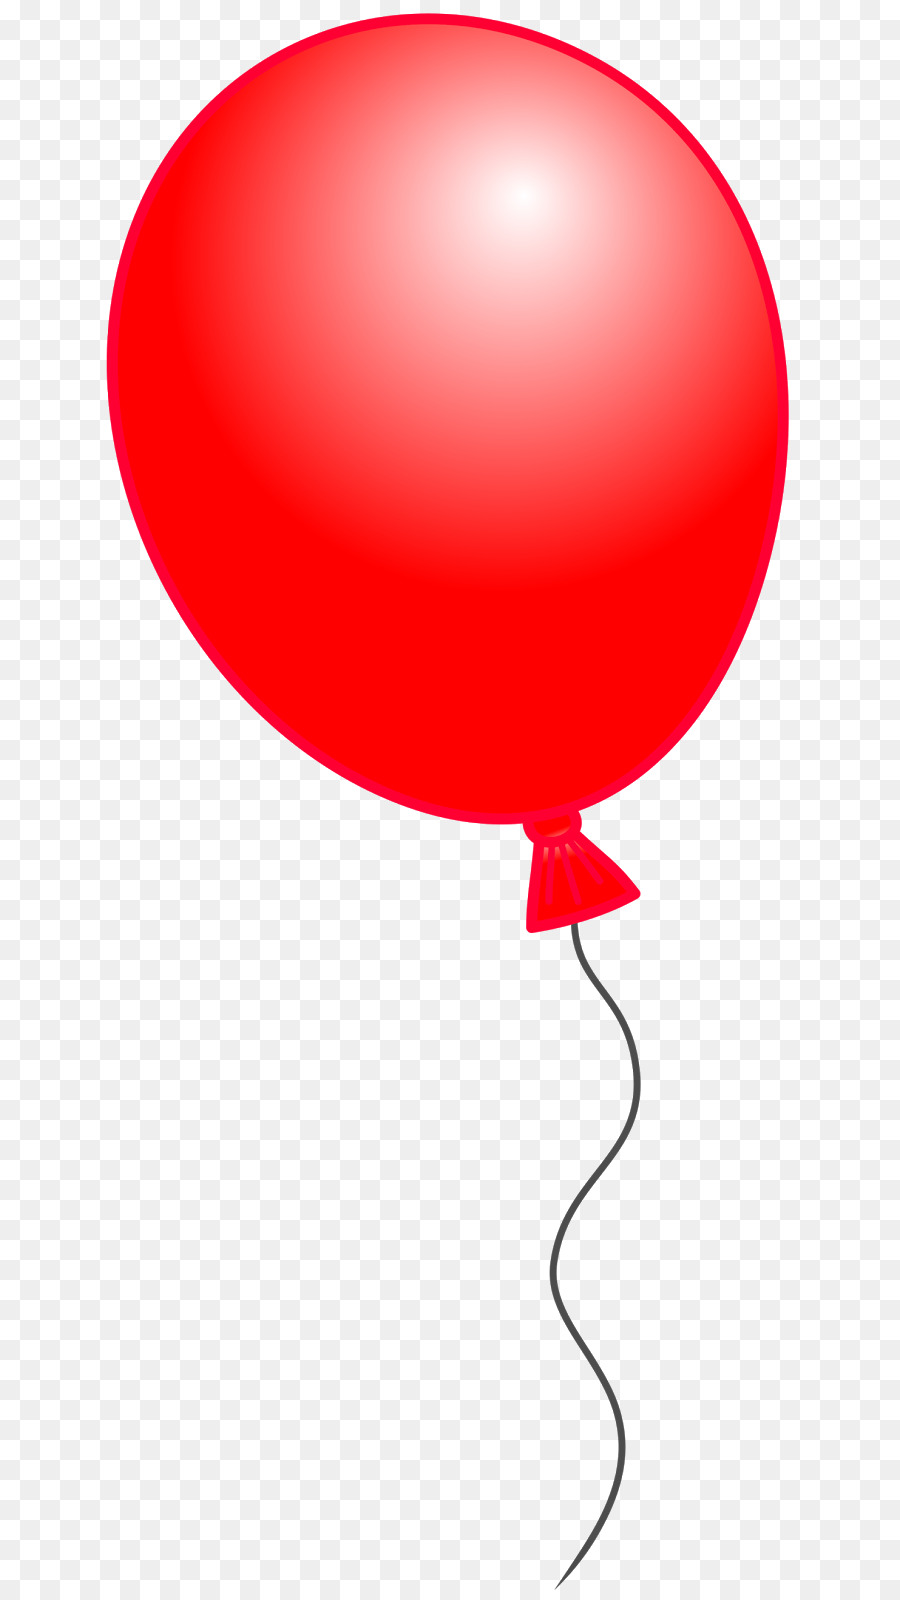 Red Balloon png download.